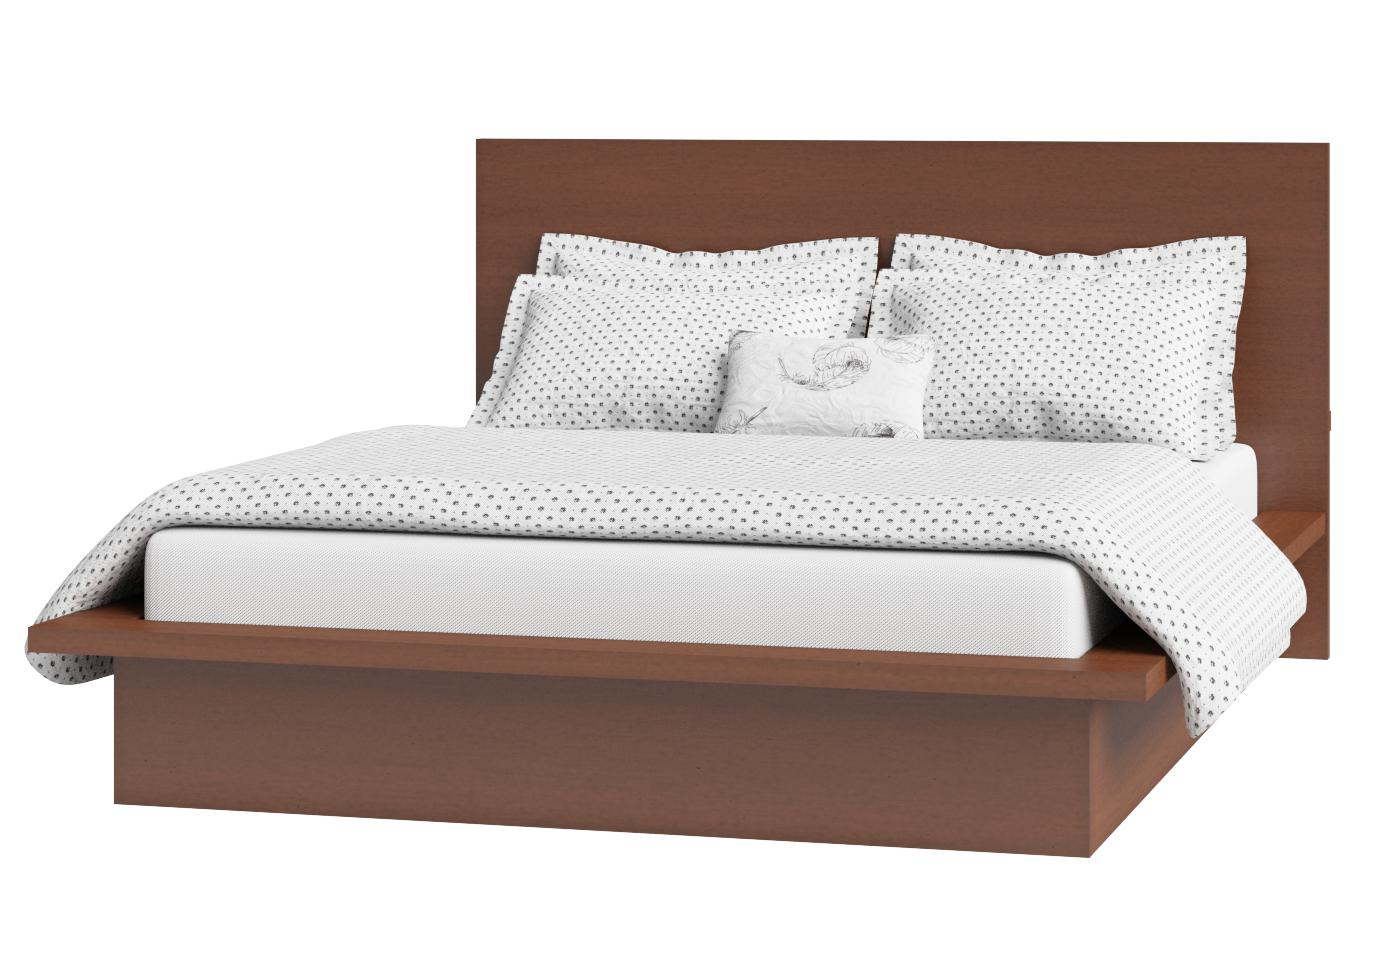 Cutout of Warner low footend wood bed in a dark cherry finish